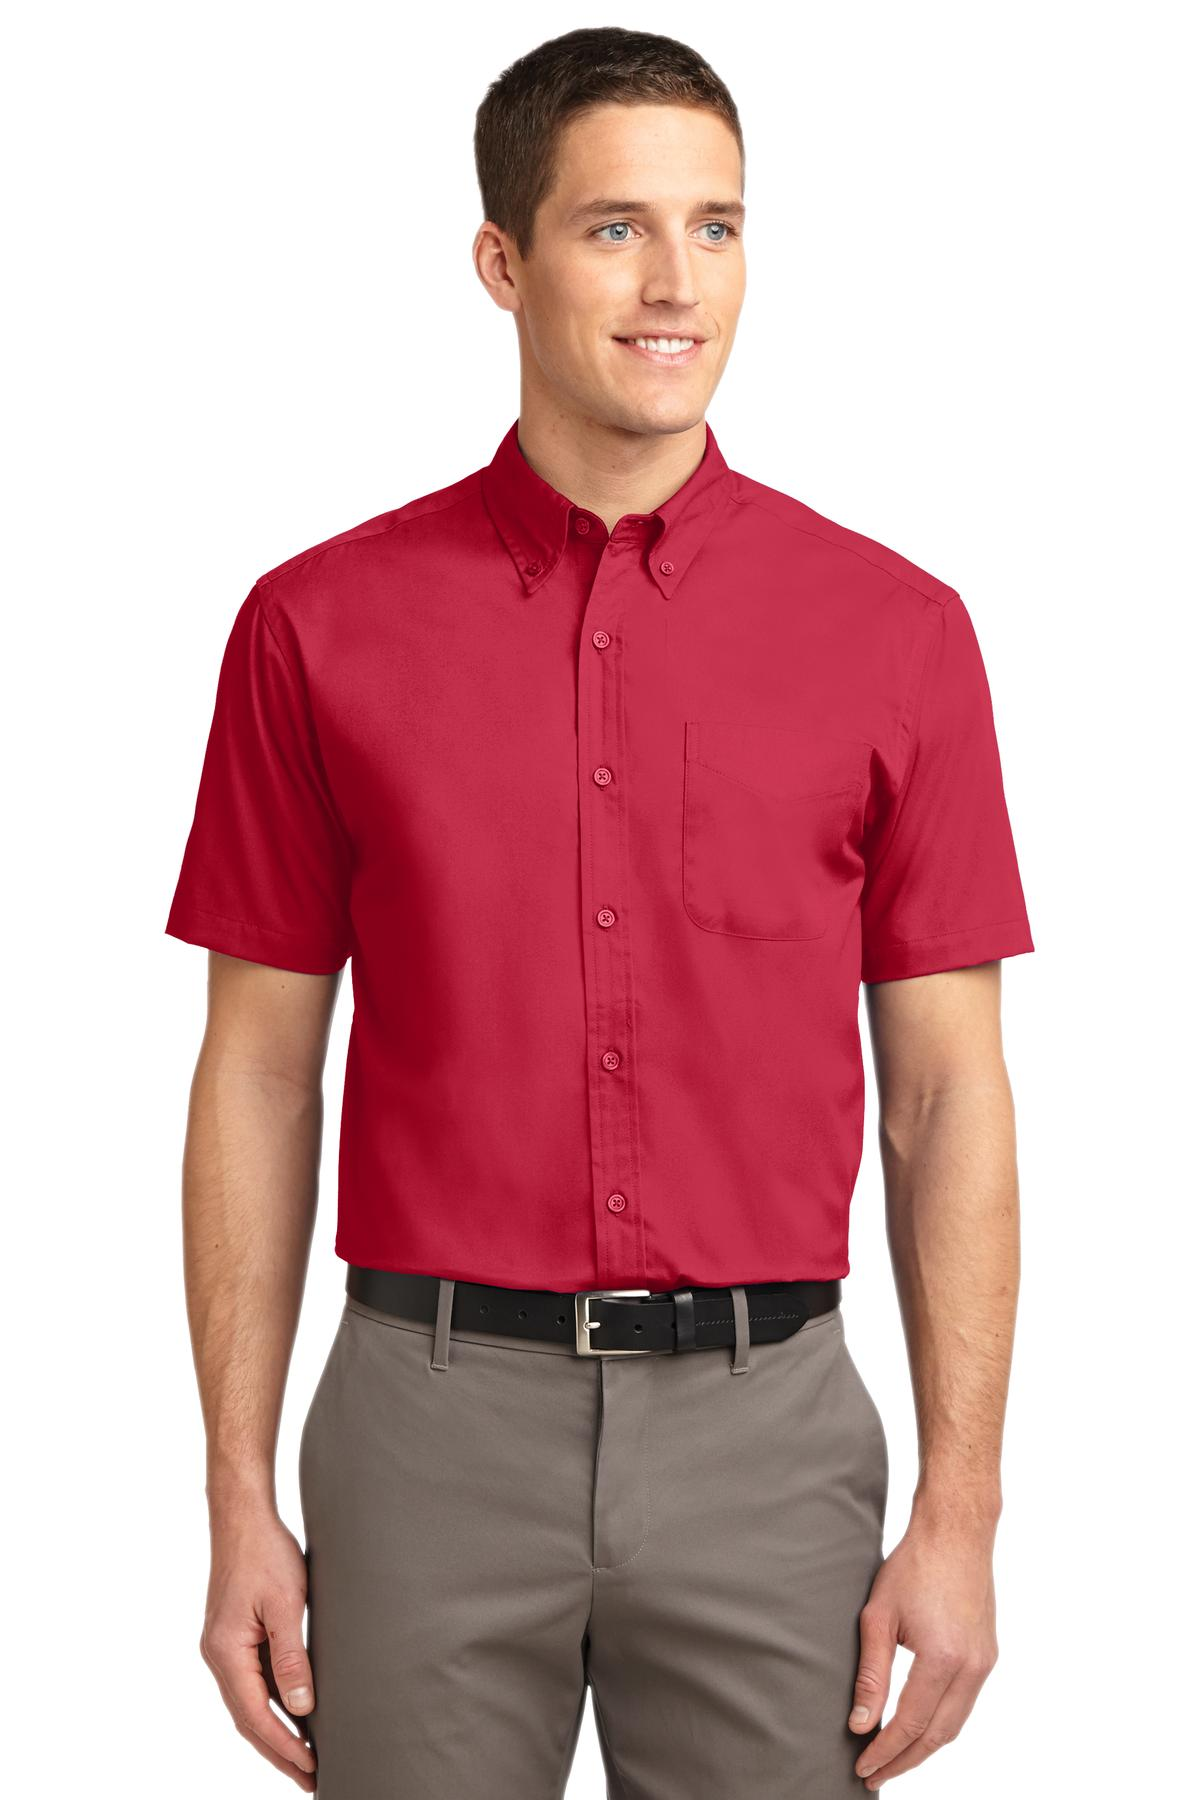 Port Authority ®  Short Sleeve Easy Care Shirt.  S508 - Red/ Light Stone